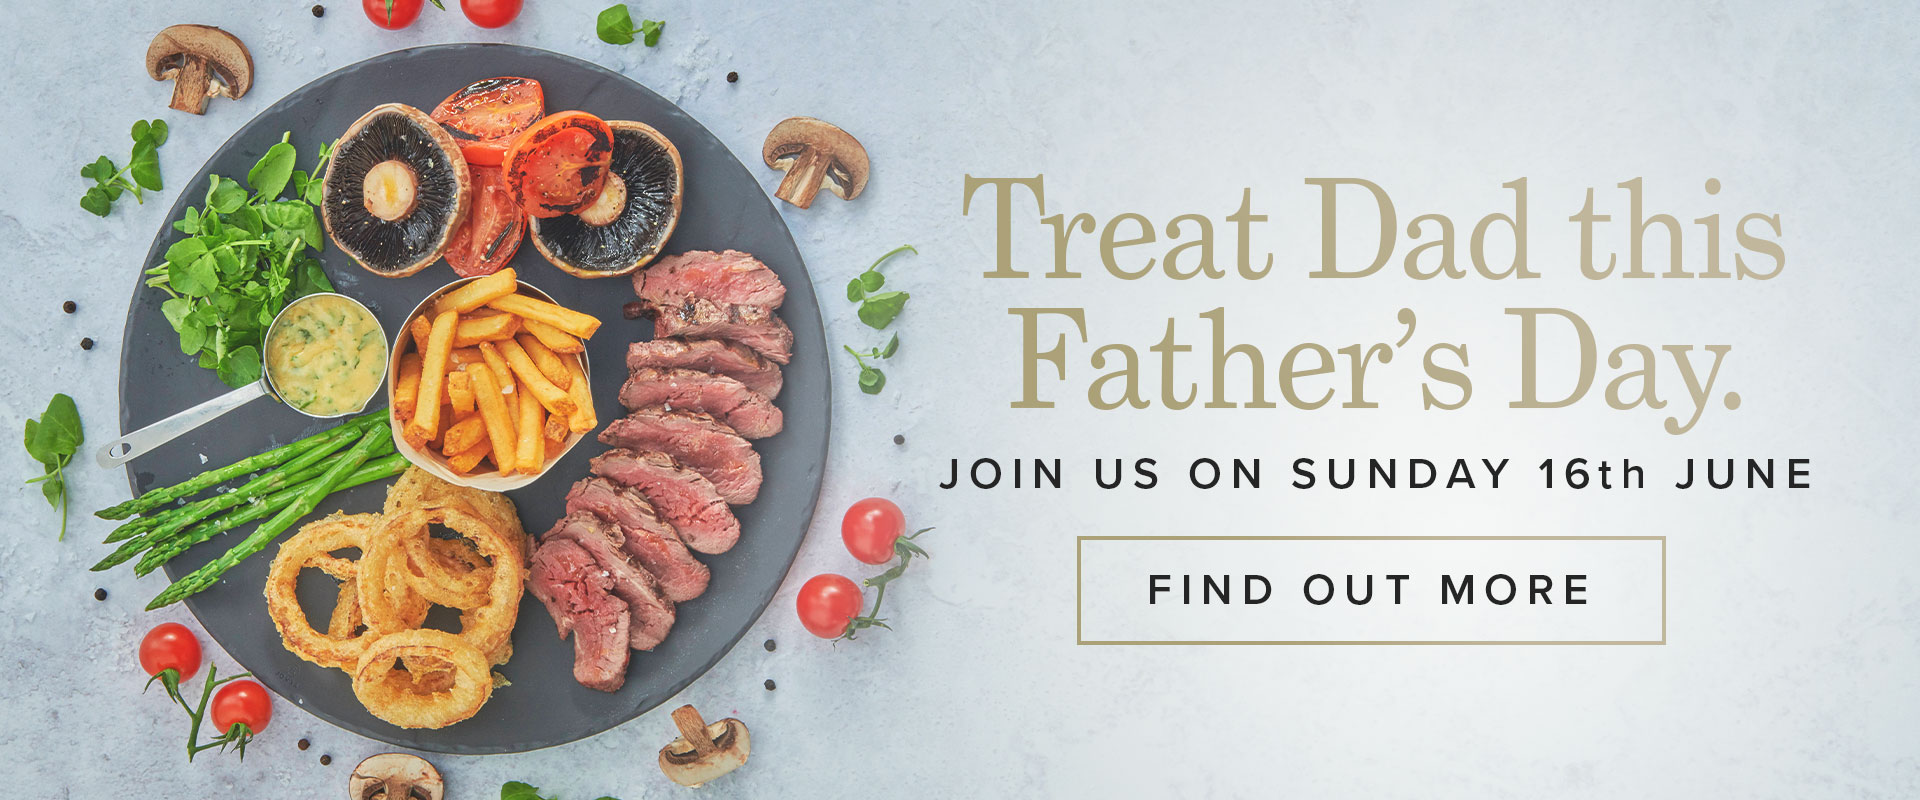 Father's Day at Browns Bristol